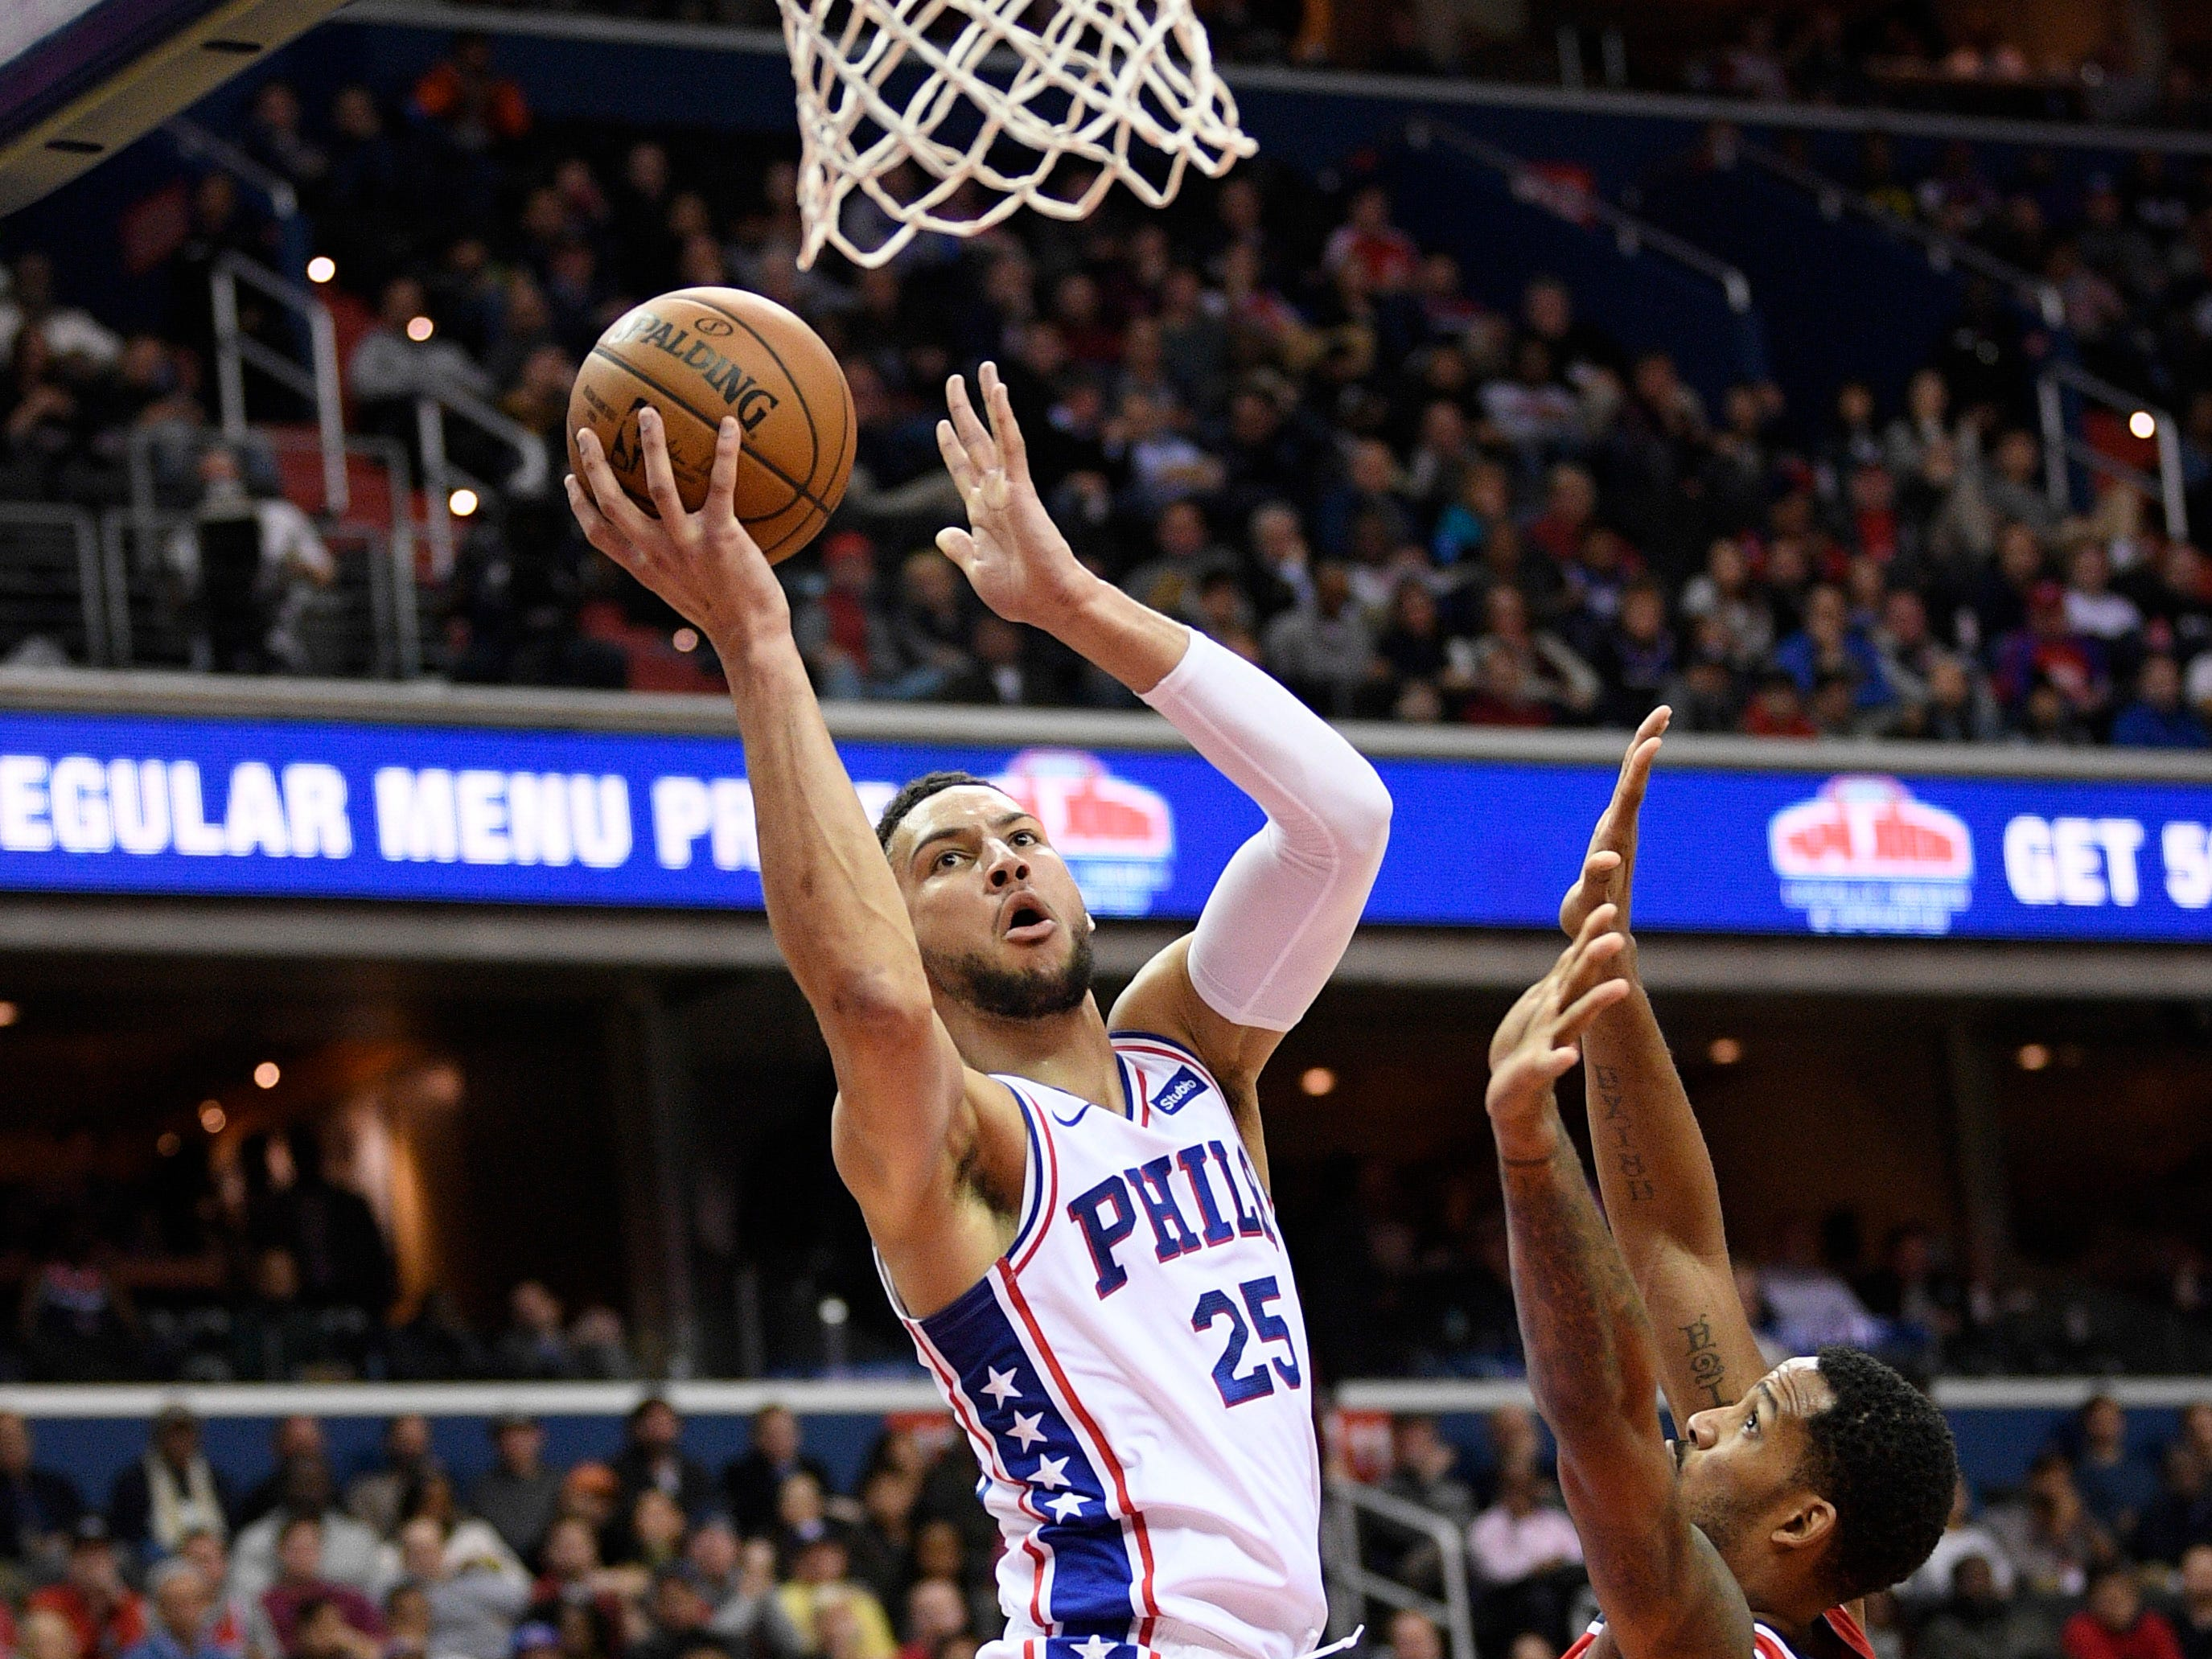 Philadelphia 76ers guard Ben Simmons (25) goes to the basket against Washington Wizards forward Trevor Ariza (1) during the first half of an NBA basketball game, Wednesday, Jan. 9, 2019, in Washington. (AP Photo/Nick Wass)